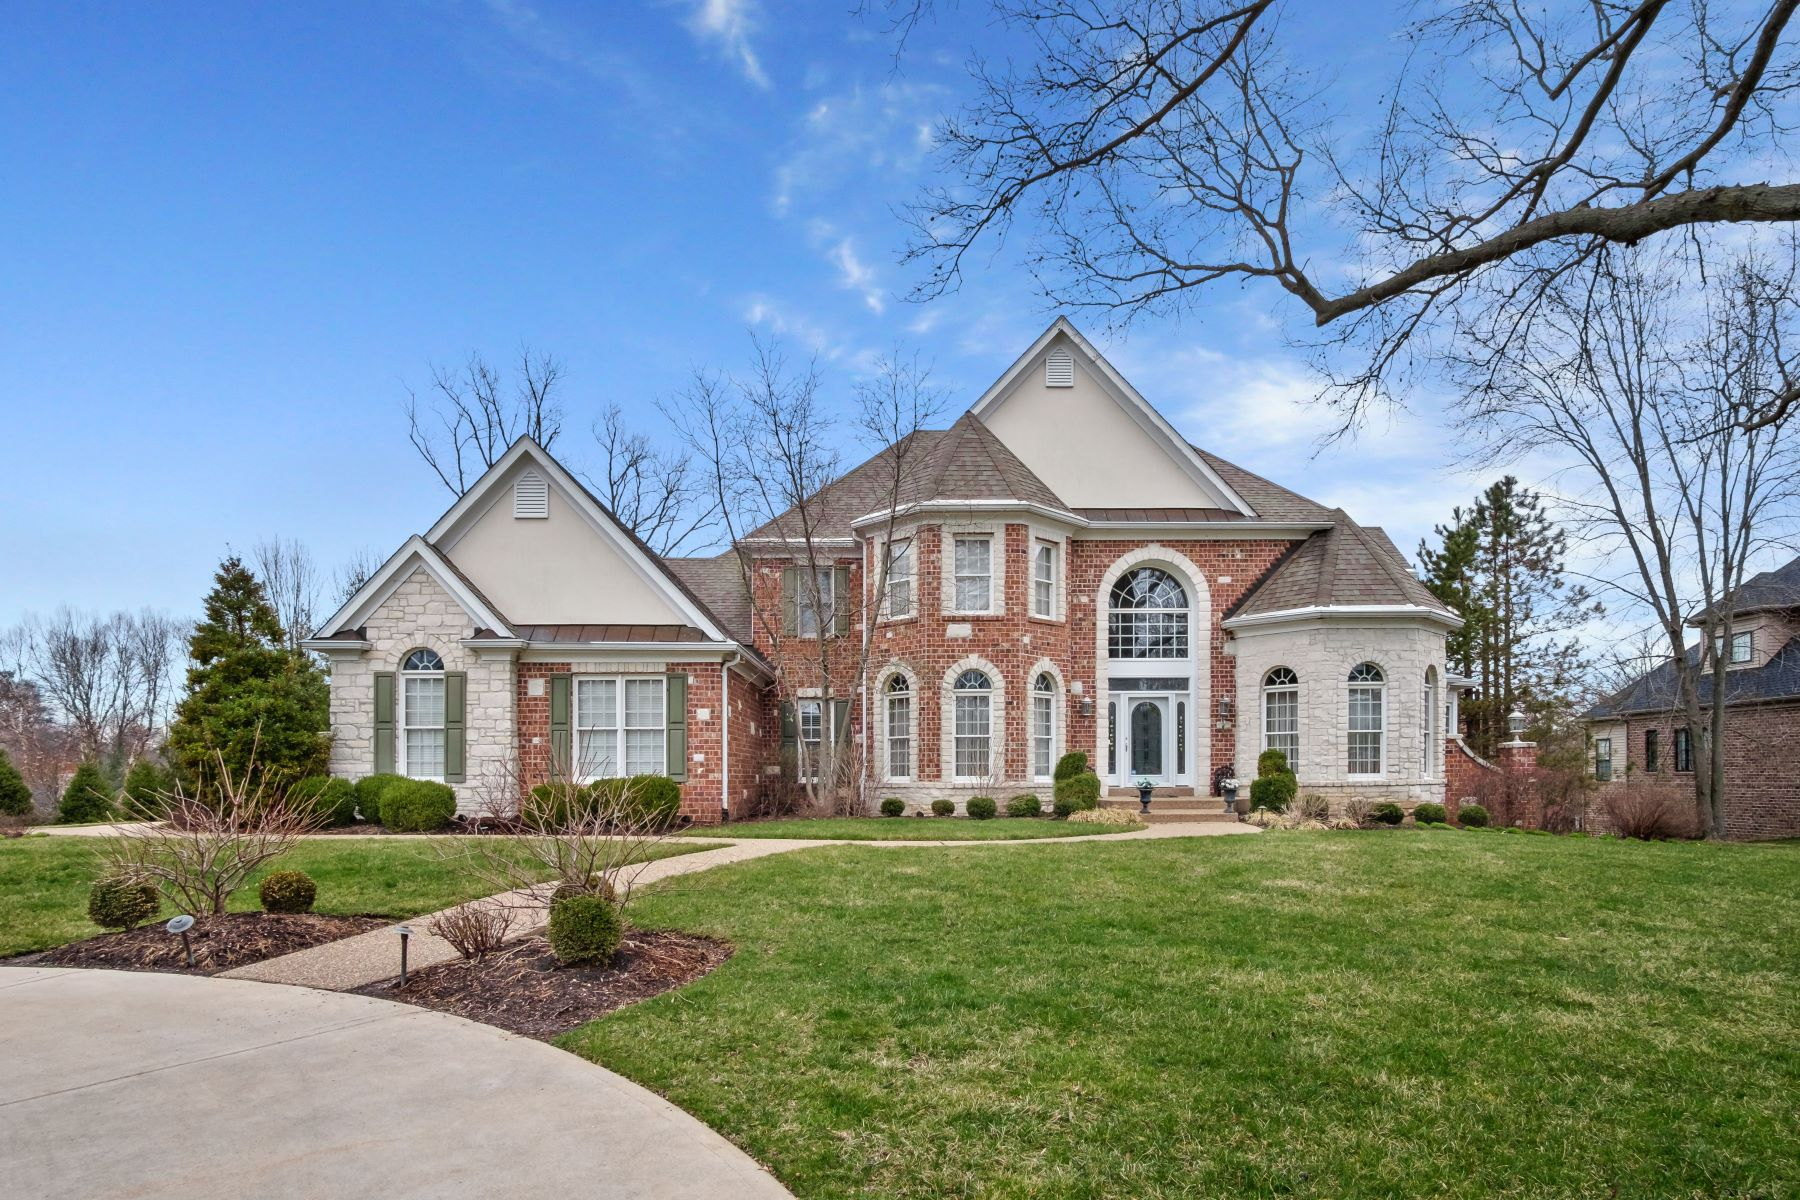 Property for Sale at Prestigious & Spacious Home Nestled In The Heart of Frontenac 11415 Clayton Road Frontenac, Missouri 63131 United States